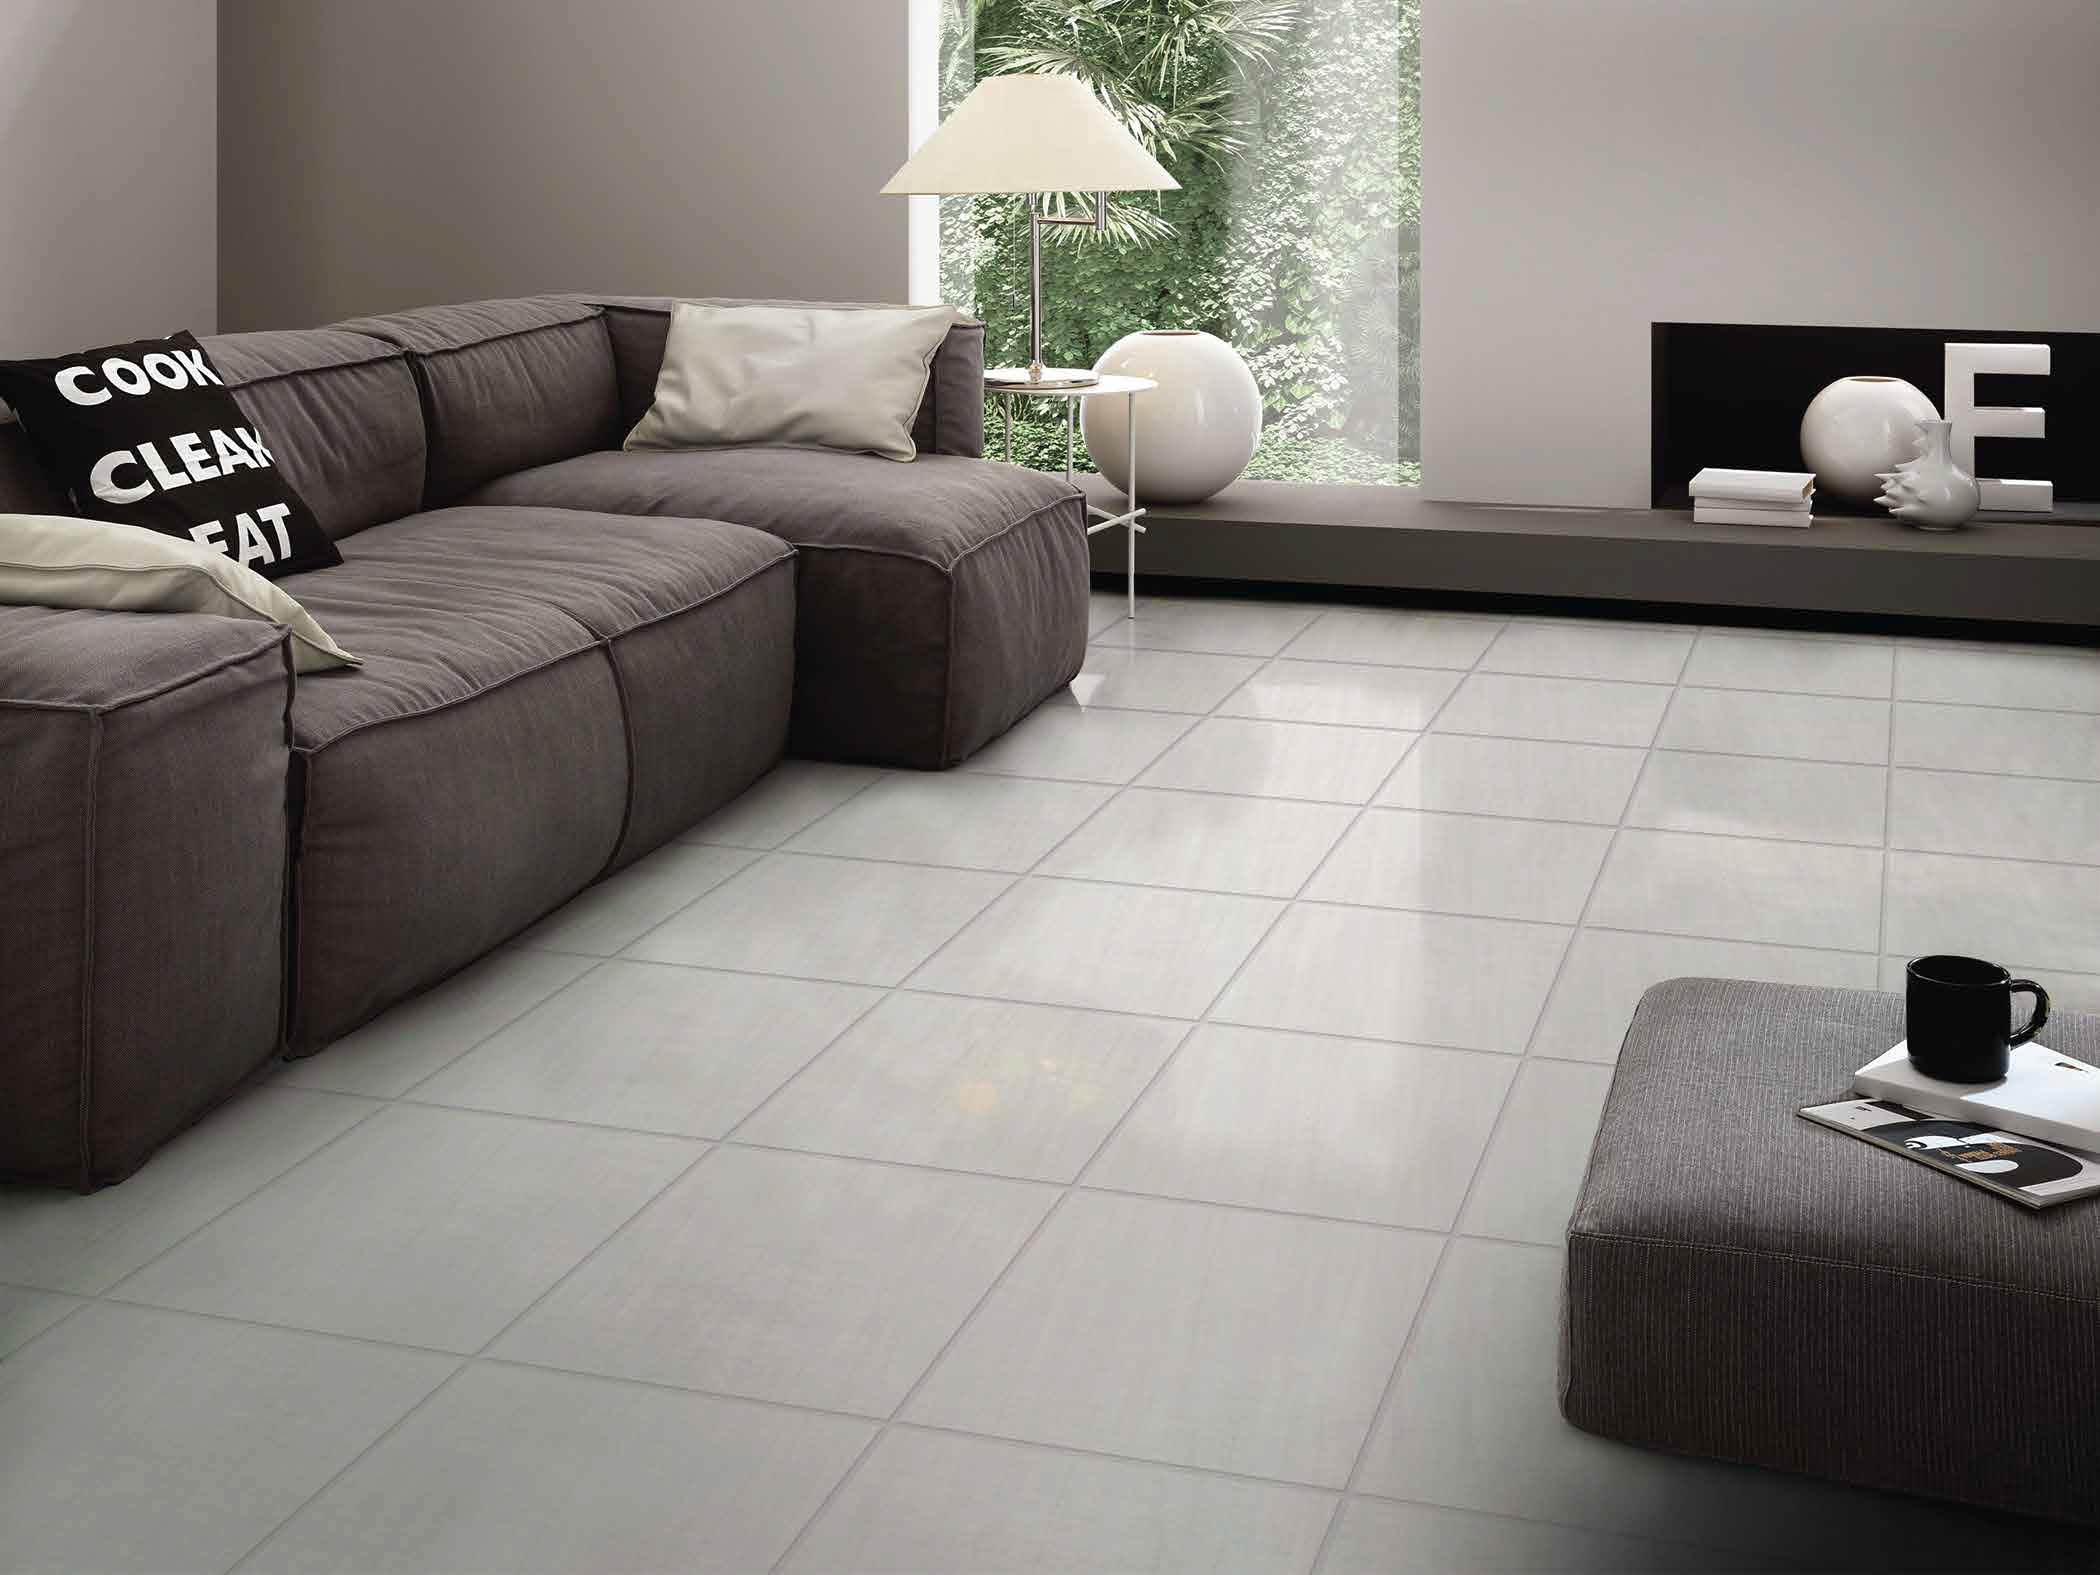 Venus Tiles In Dubai Changing Your Floors One Tile At A Time